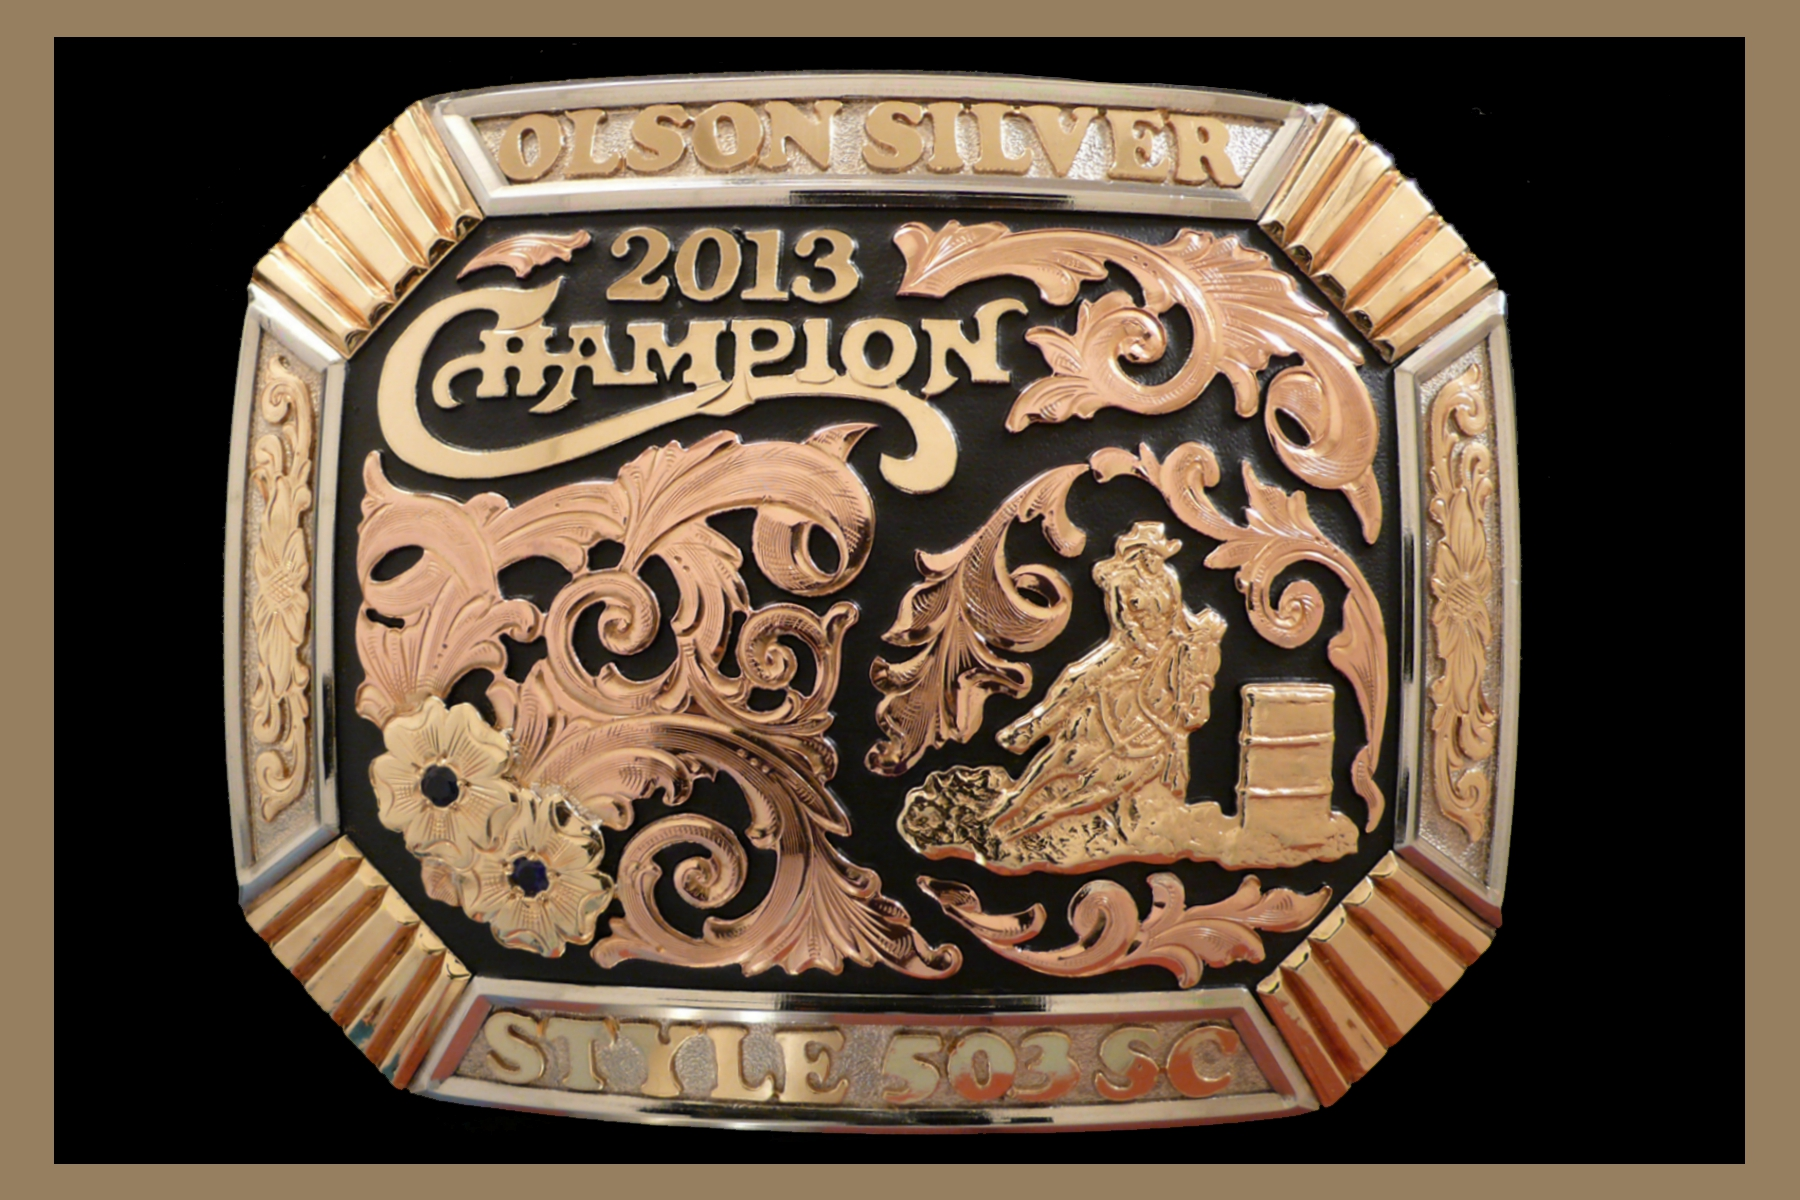 Custom trophy buckle with black background and stones